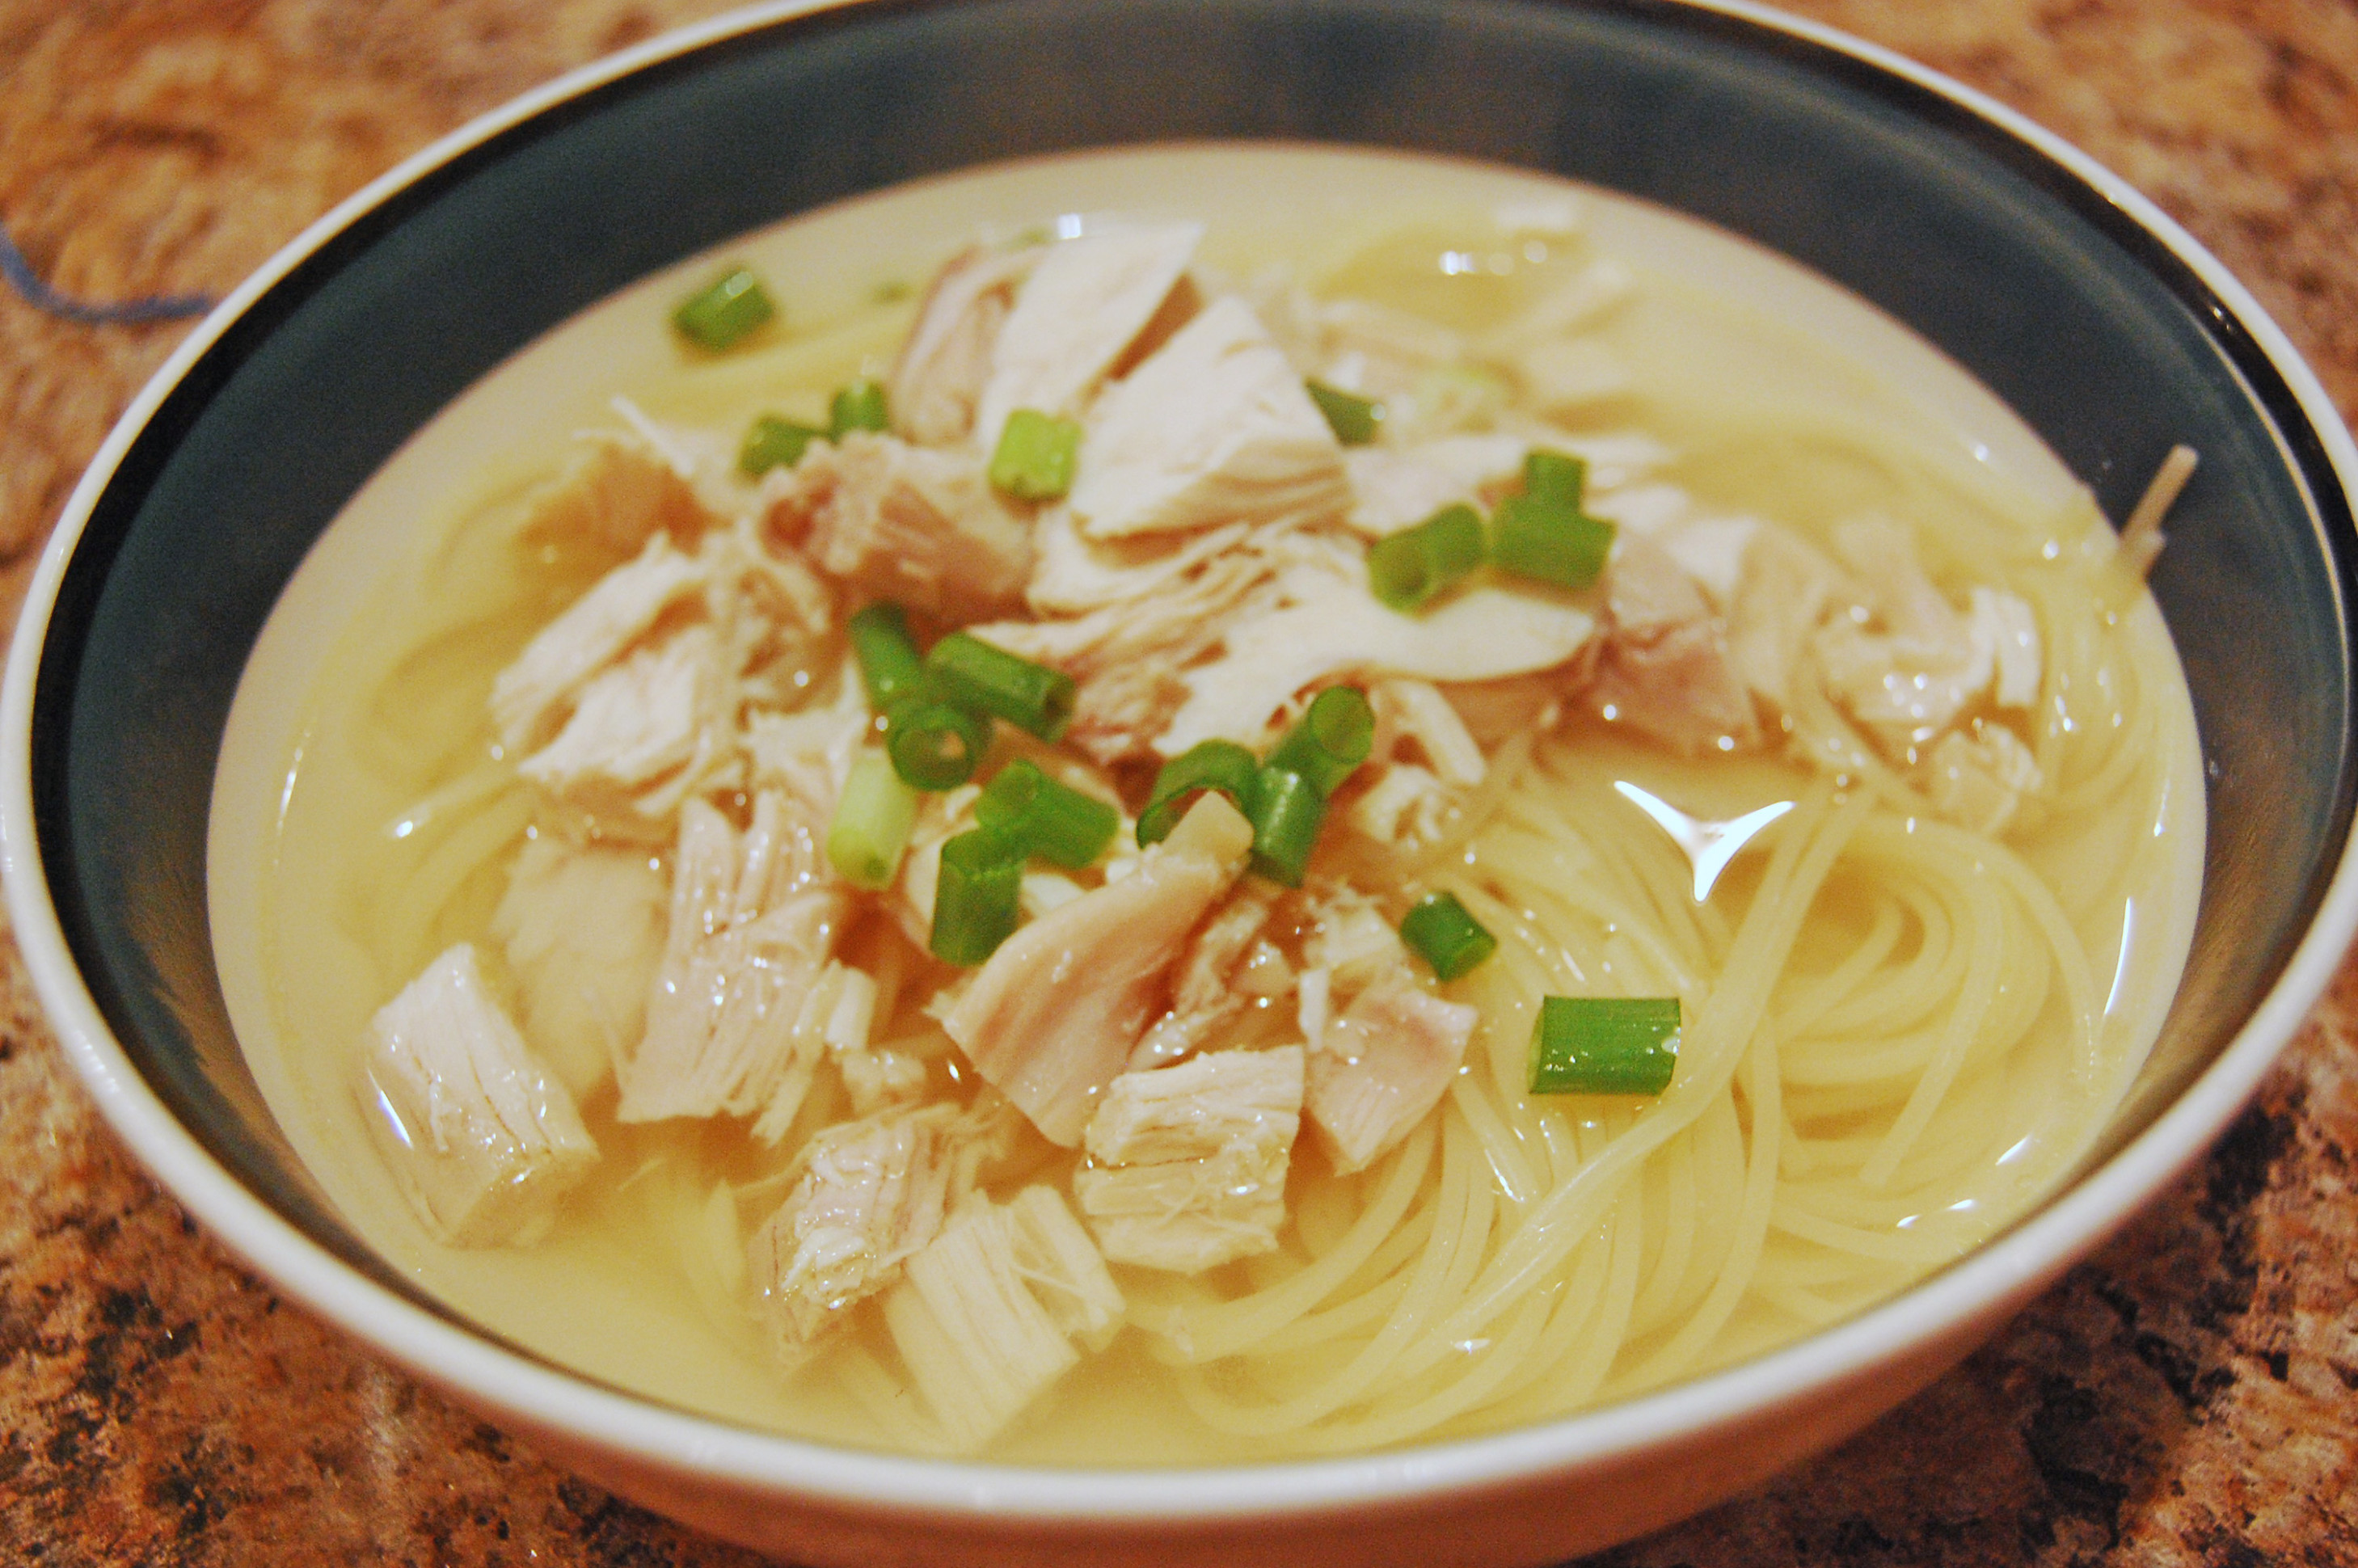 Easy Chicken Noodle Soup From A Leftover Roasted Chicken ...